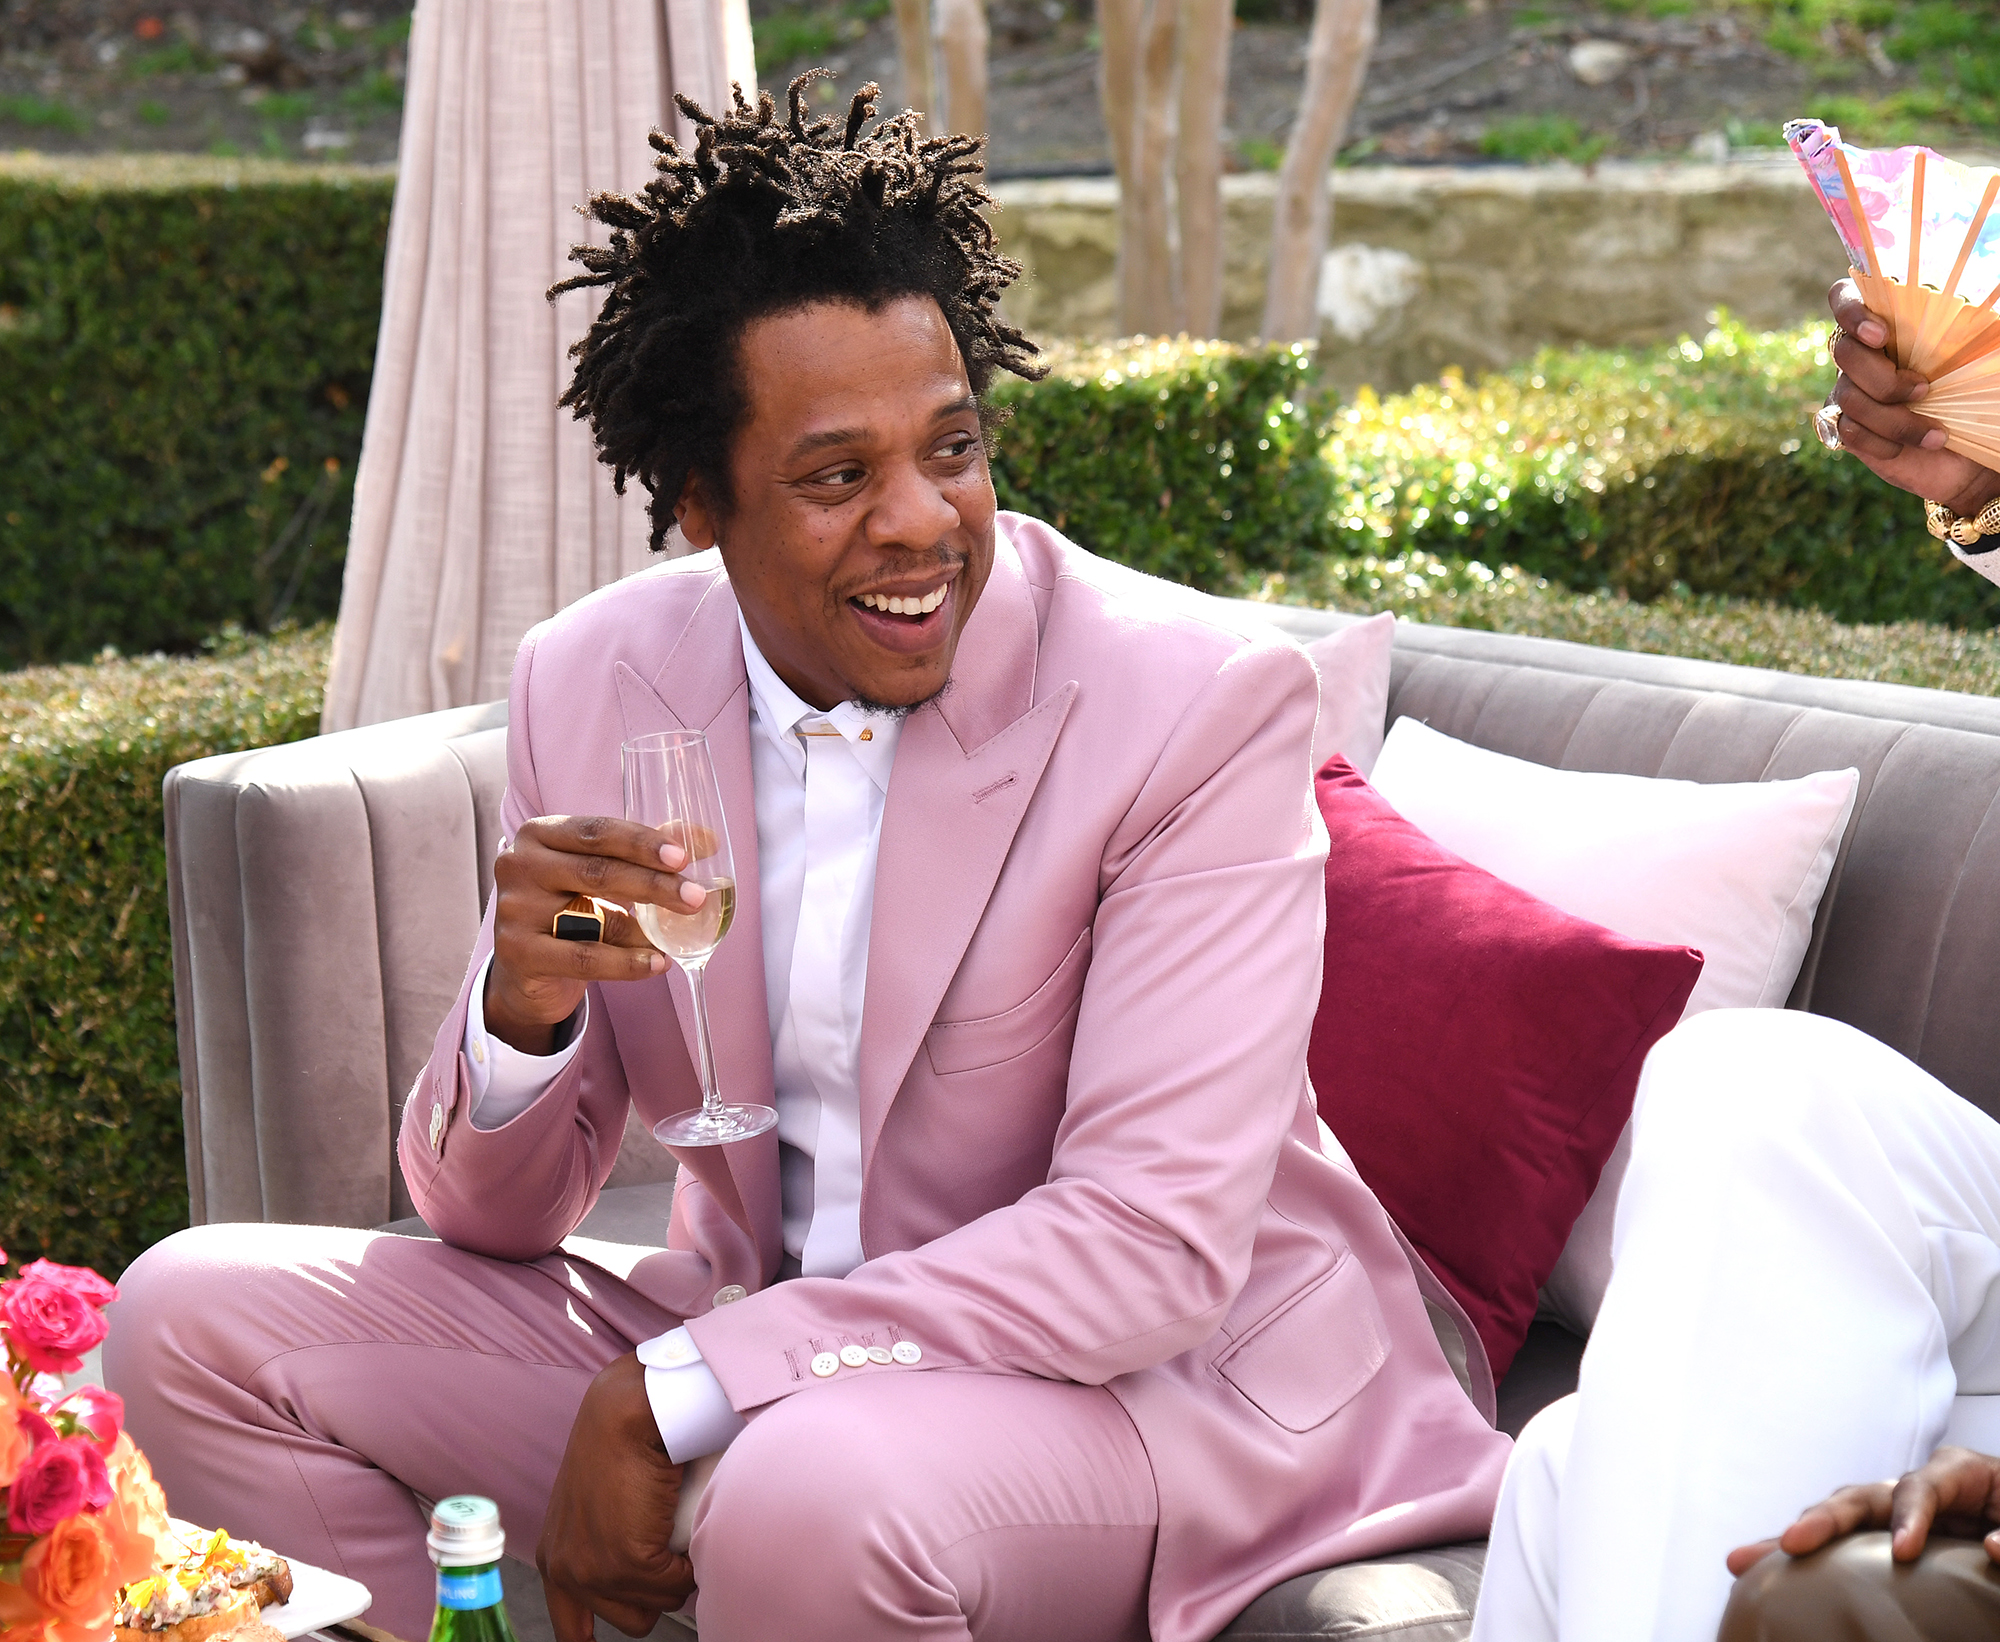 Jay-Z sells half of his Champagne brand to owner of Dom Pérignon